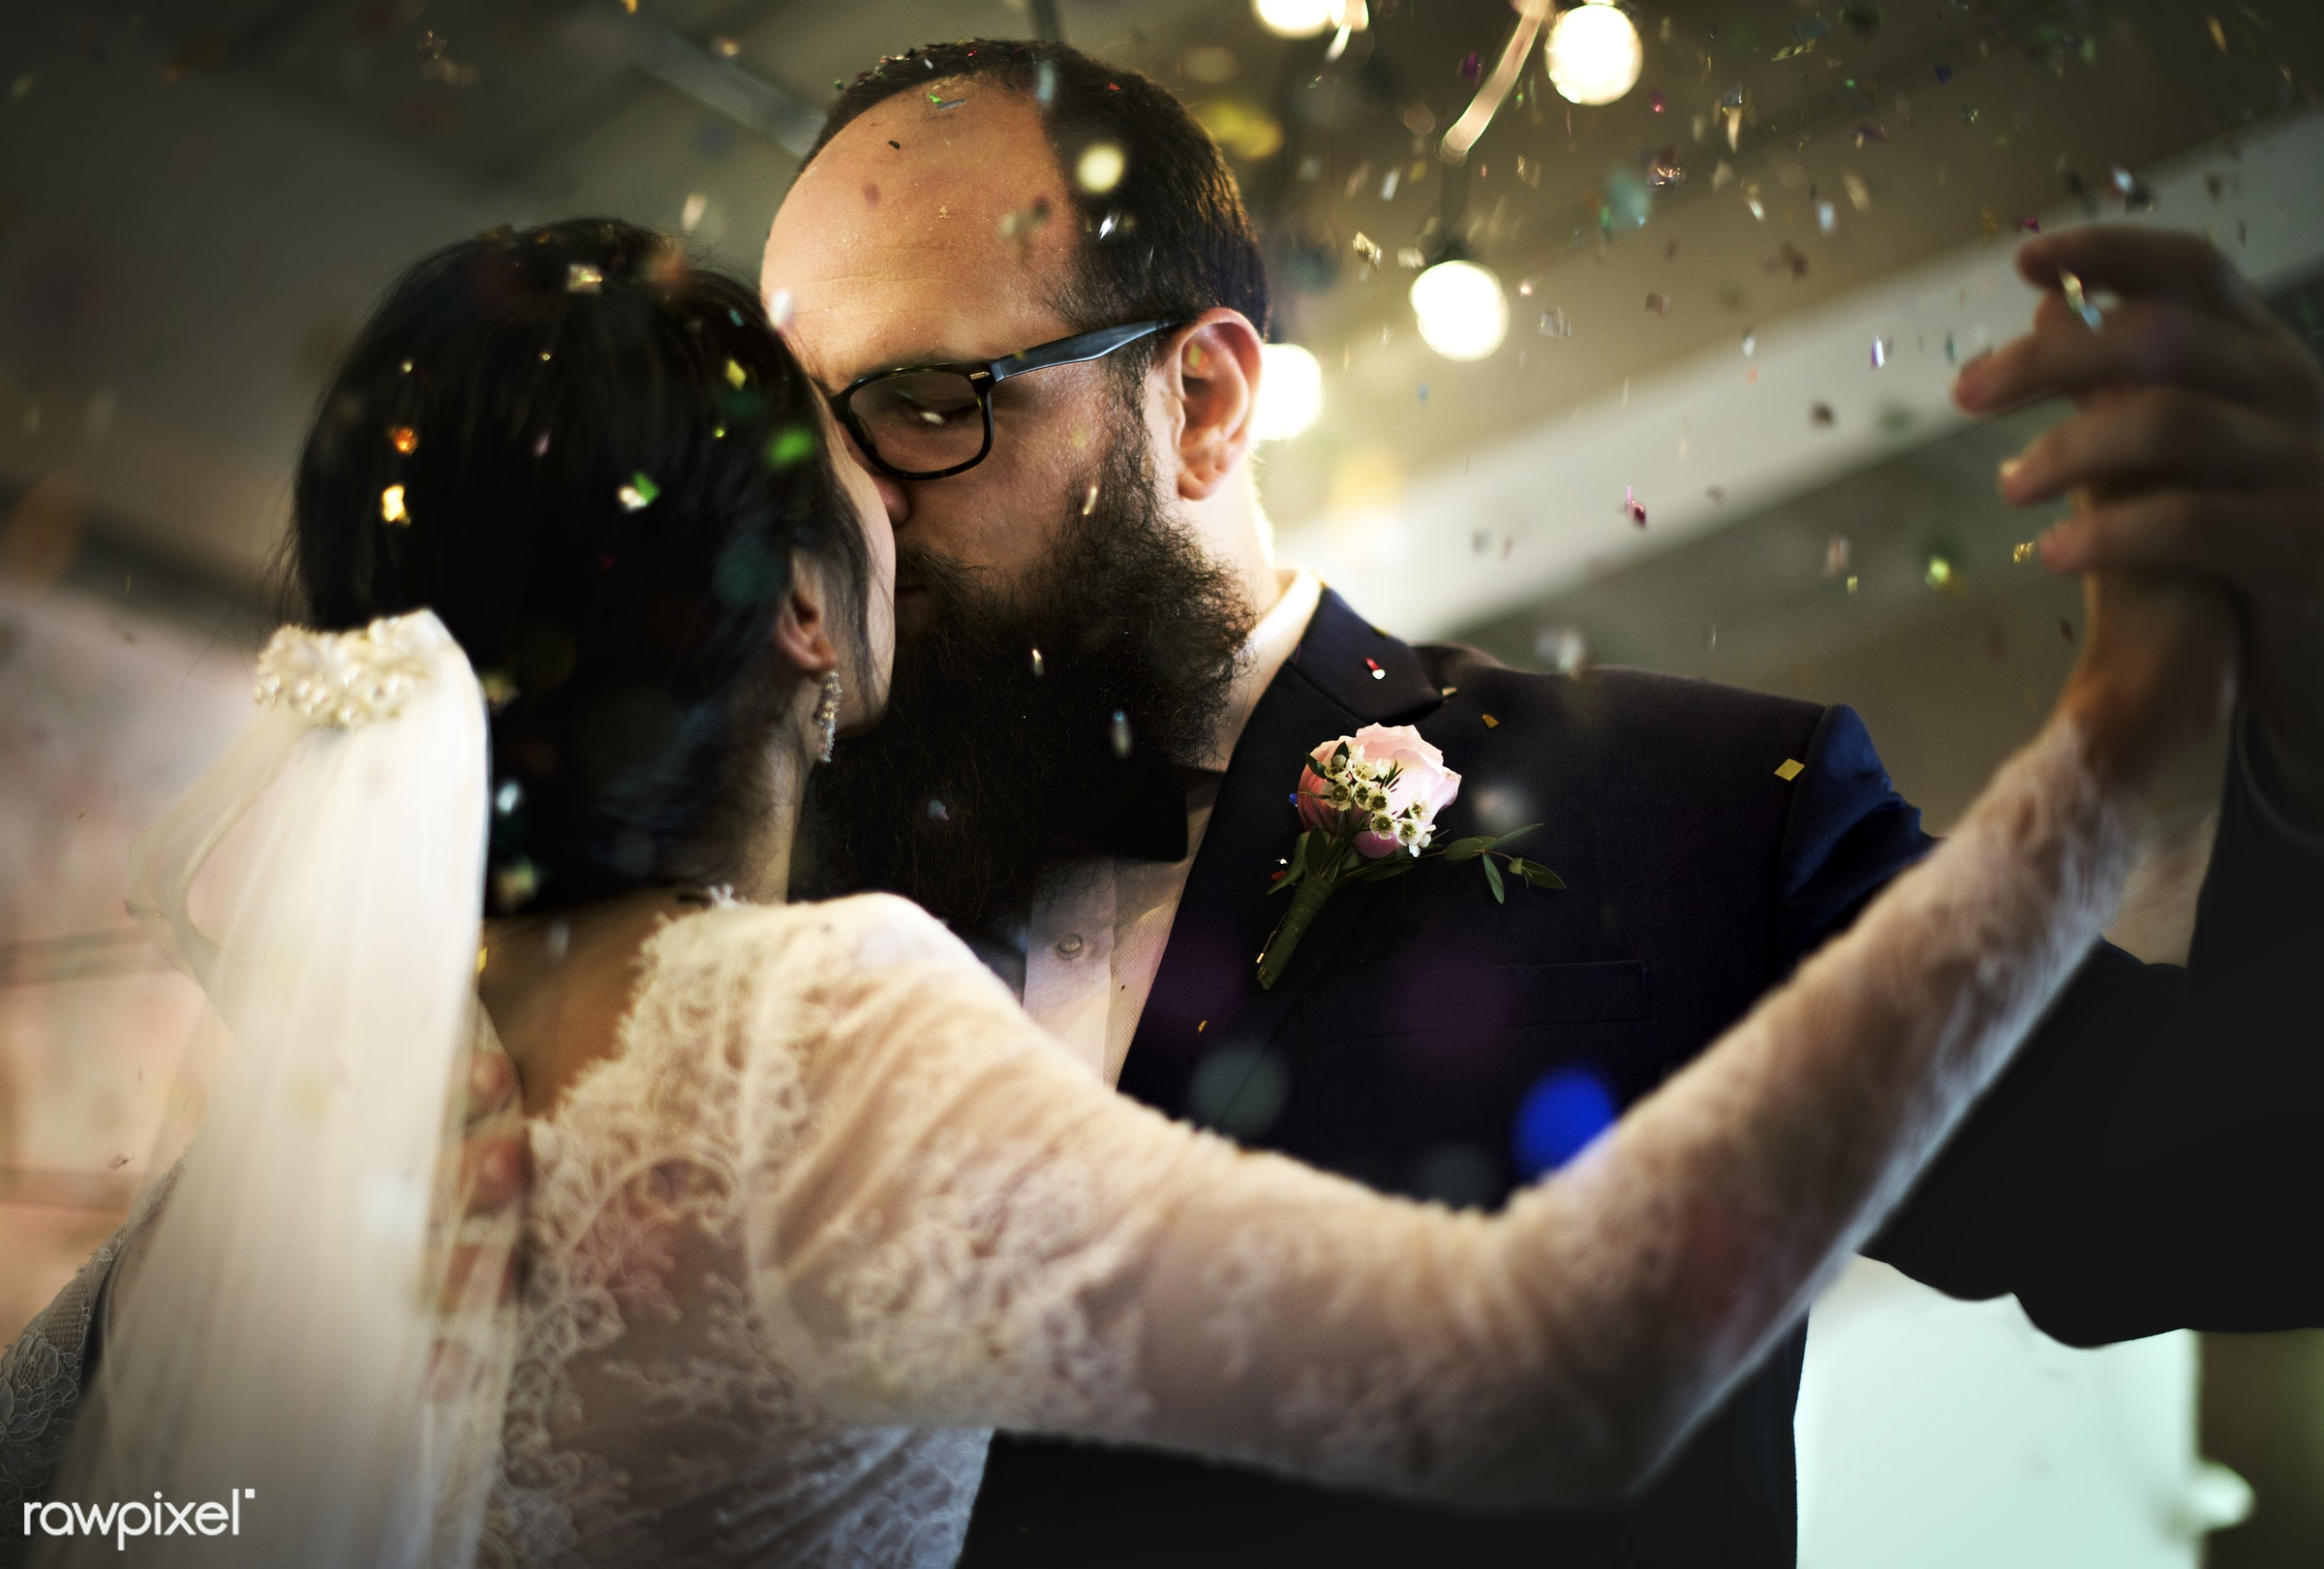 holding, occasion, husband, people, love, married, hands, gala, spouse, banquet, bride, cheerful, closeup, confetti,...